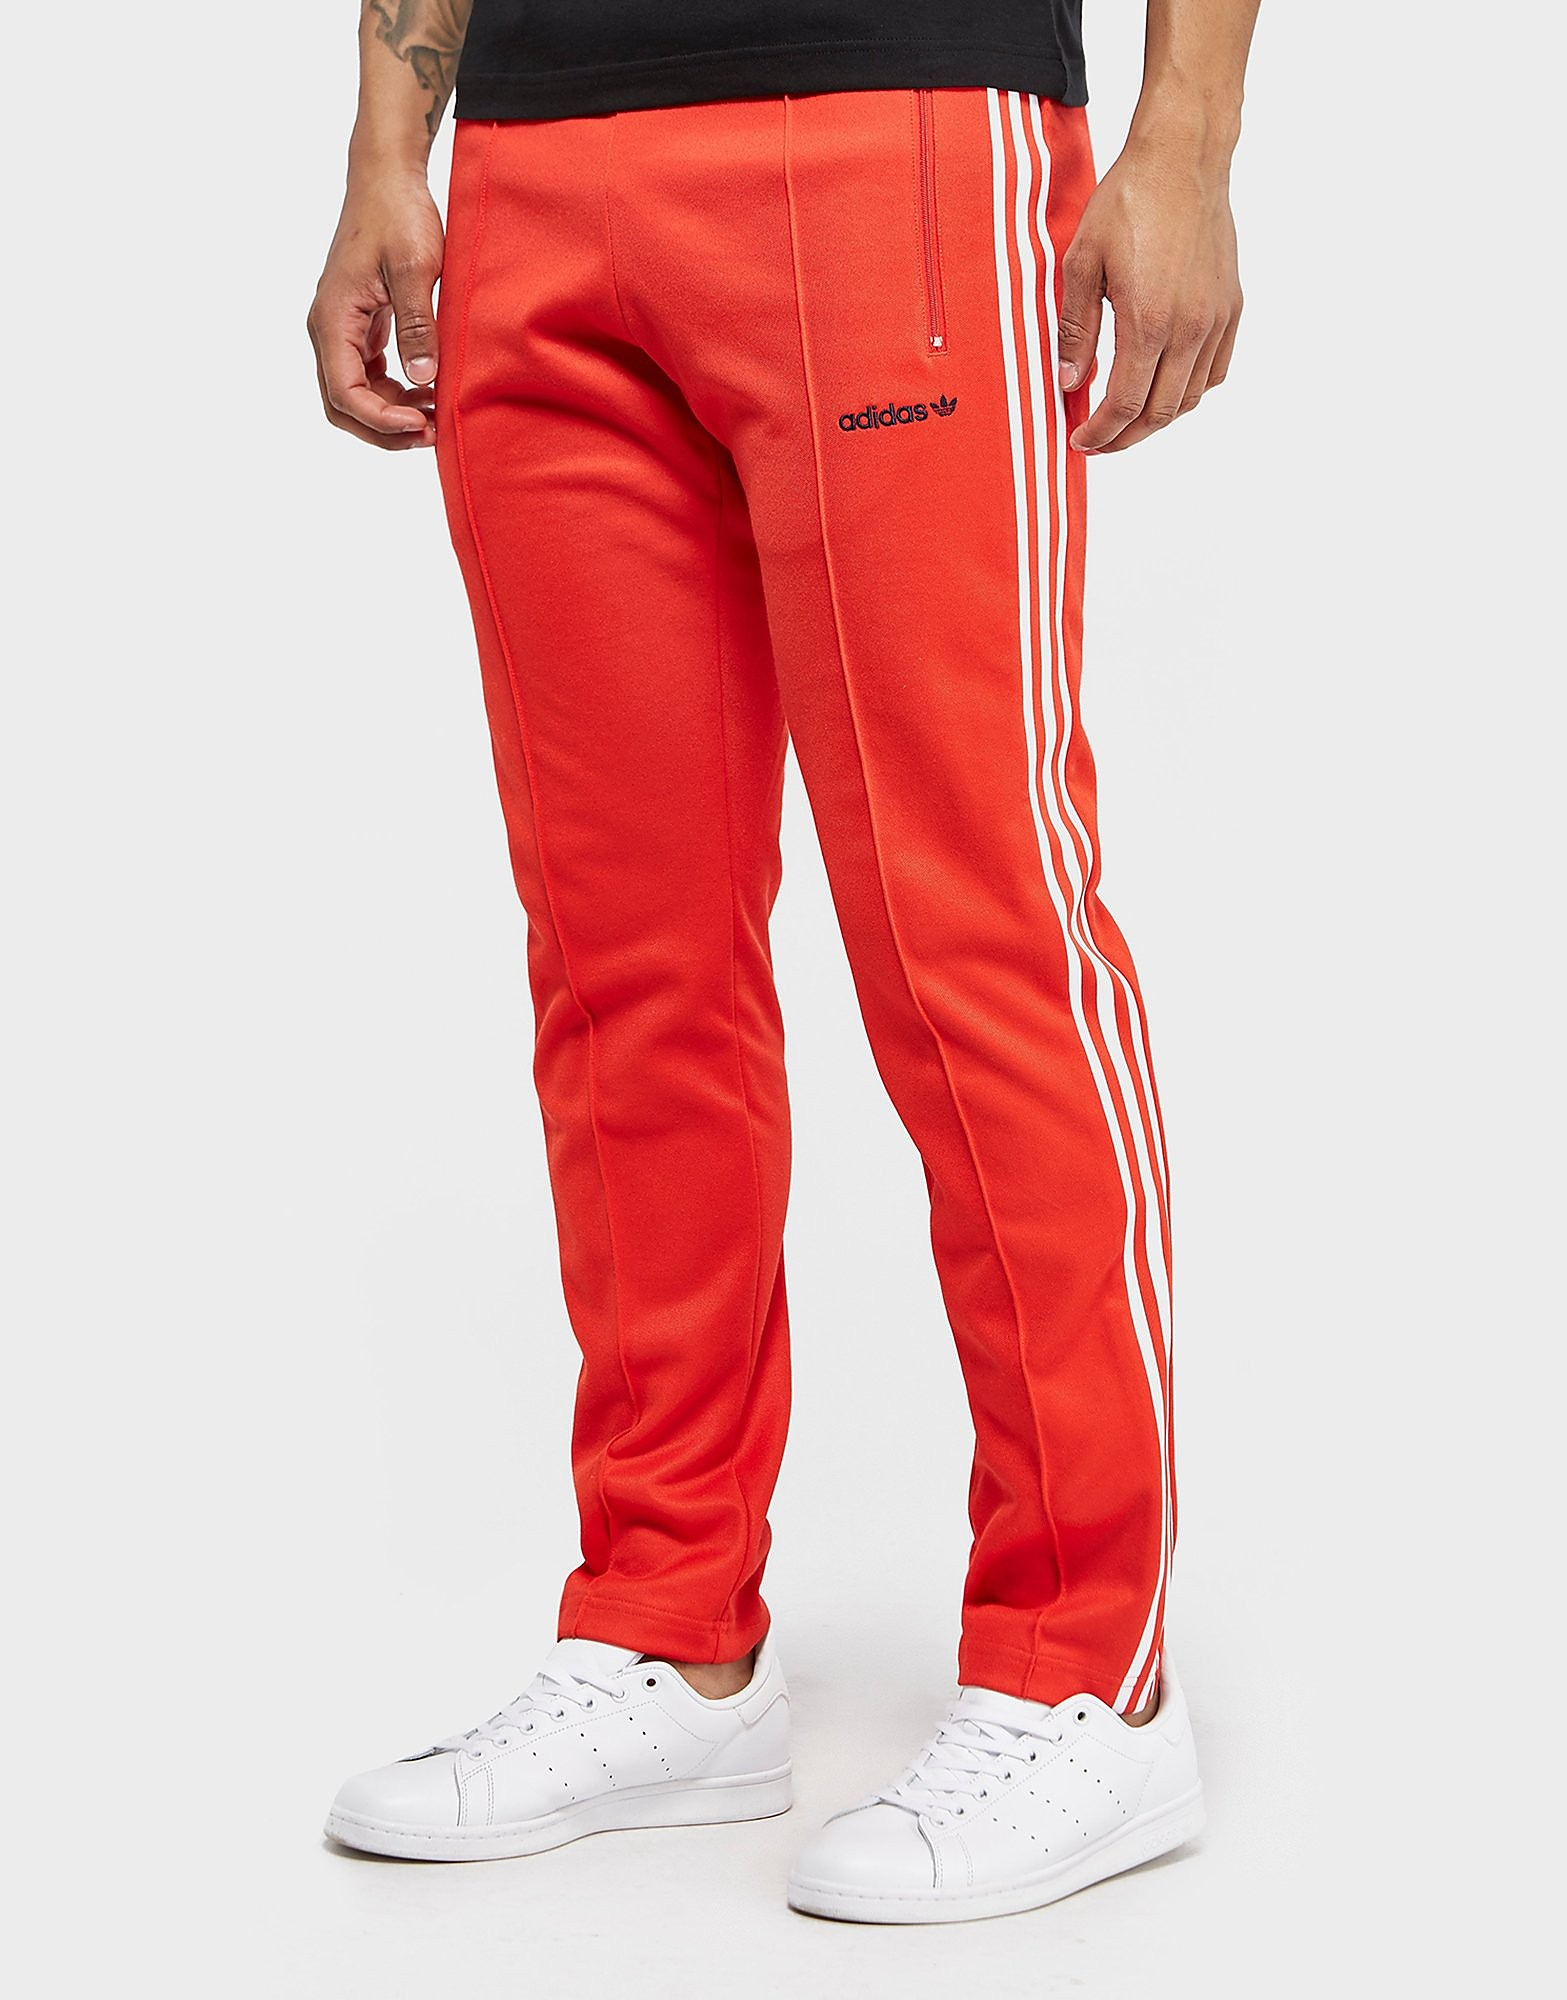 adidas Originals Trefoil Tapered Track Pants